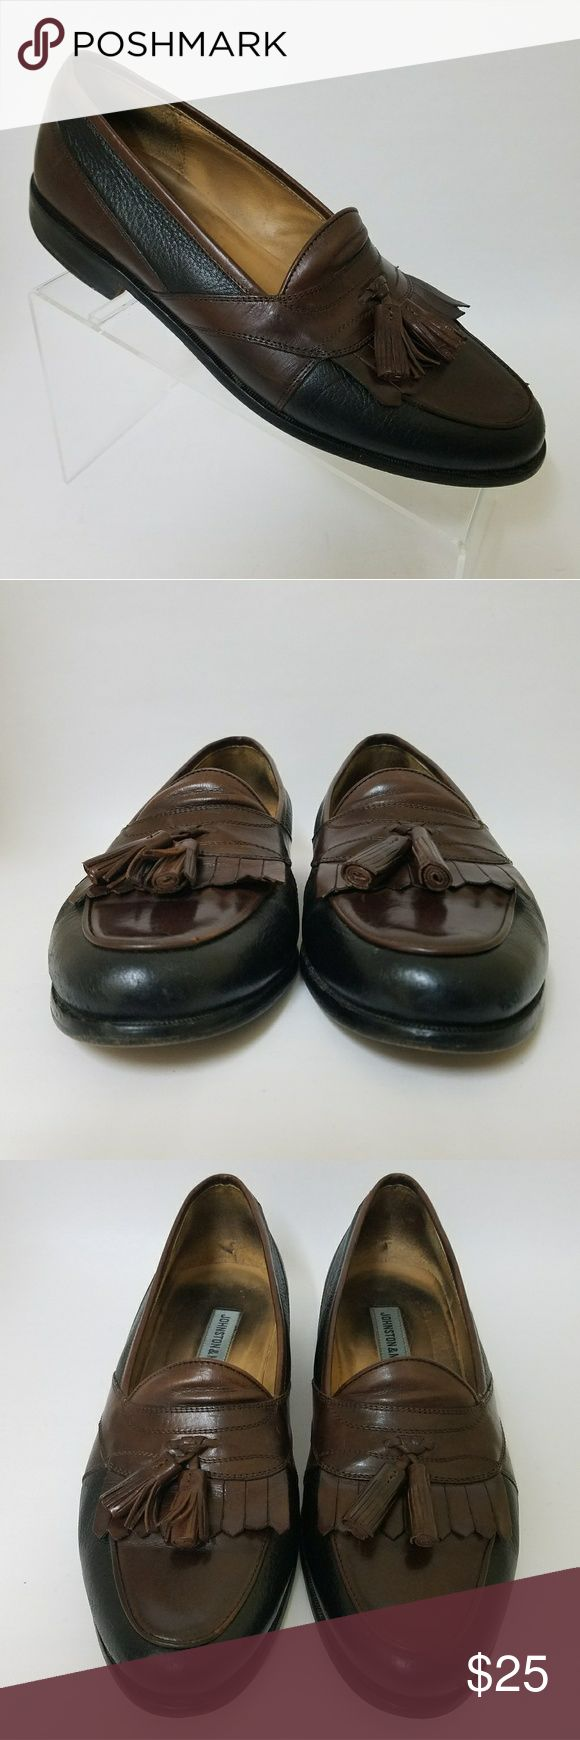 Johnston & Murphy Kilt Tassel Loafers Men's 9.5 M Good Used Condition  Size: 9.5 Medium Color: Black and Brown Style: Kilt and Tassel Loafer Slip On  Shoes have been cleaned and conditioned. Johnston & Murphy Shoes Loafers & Slip-Ons